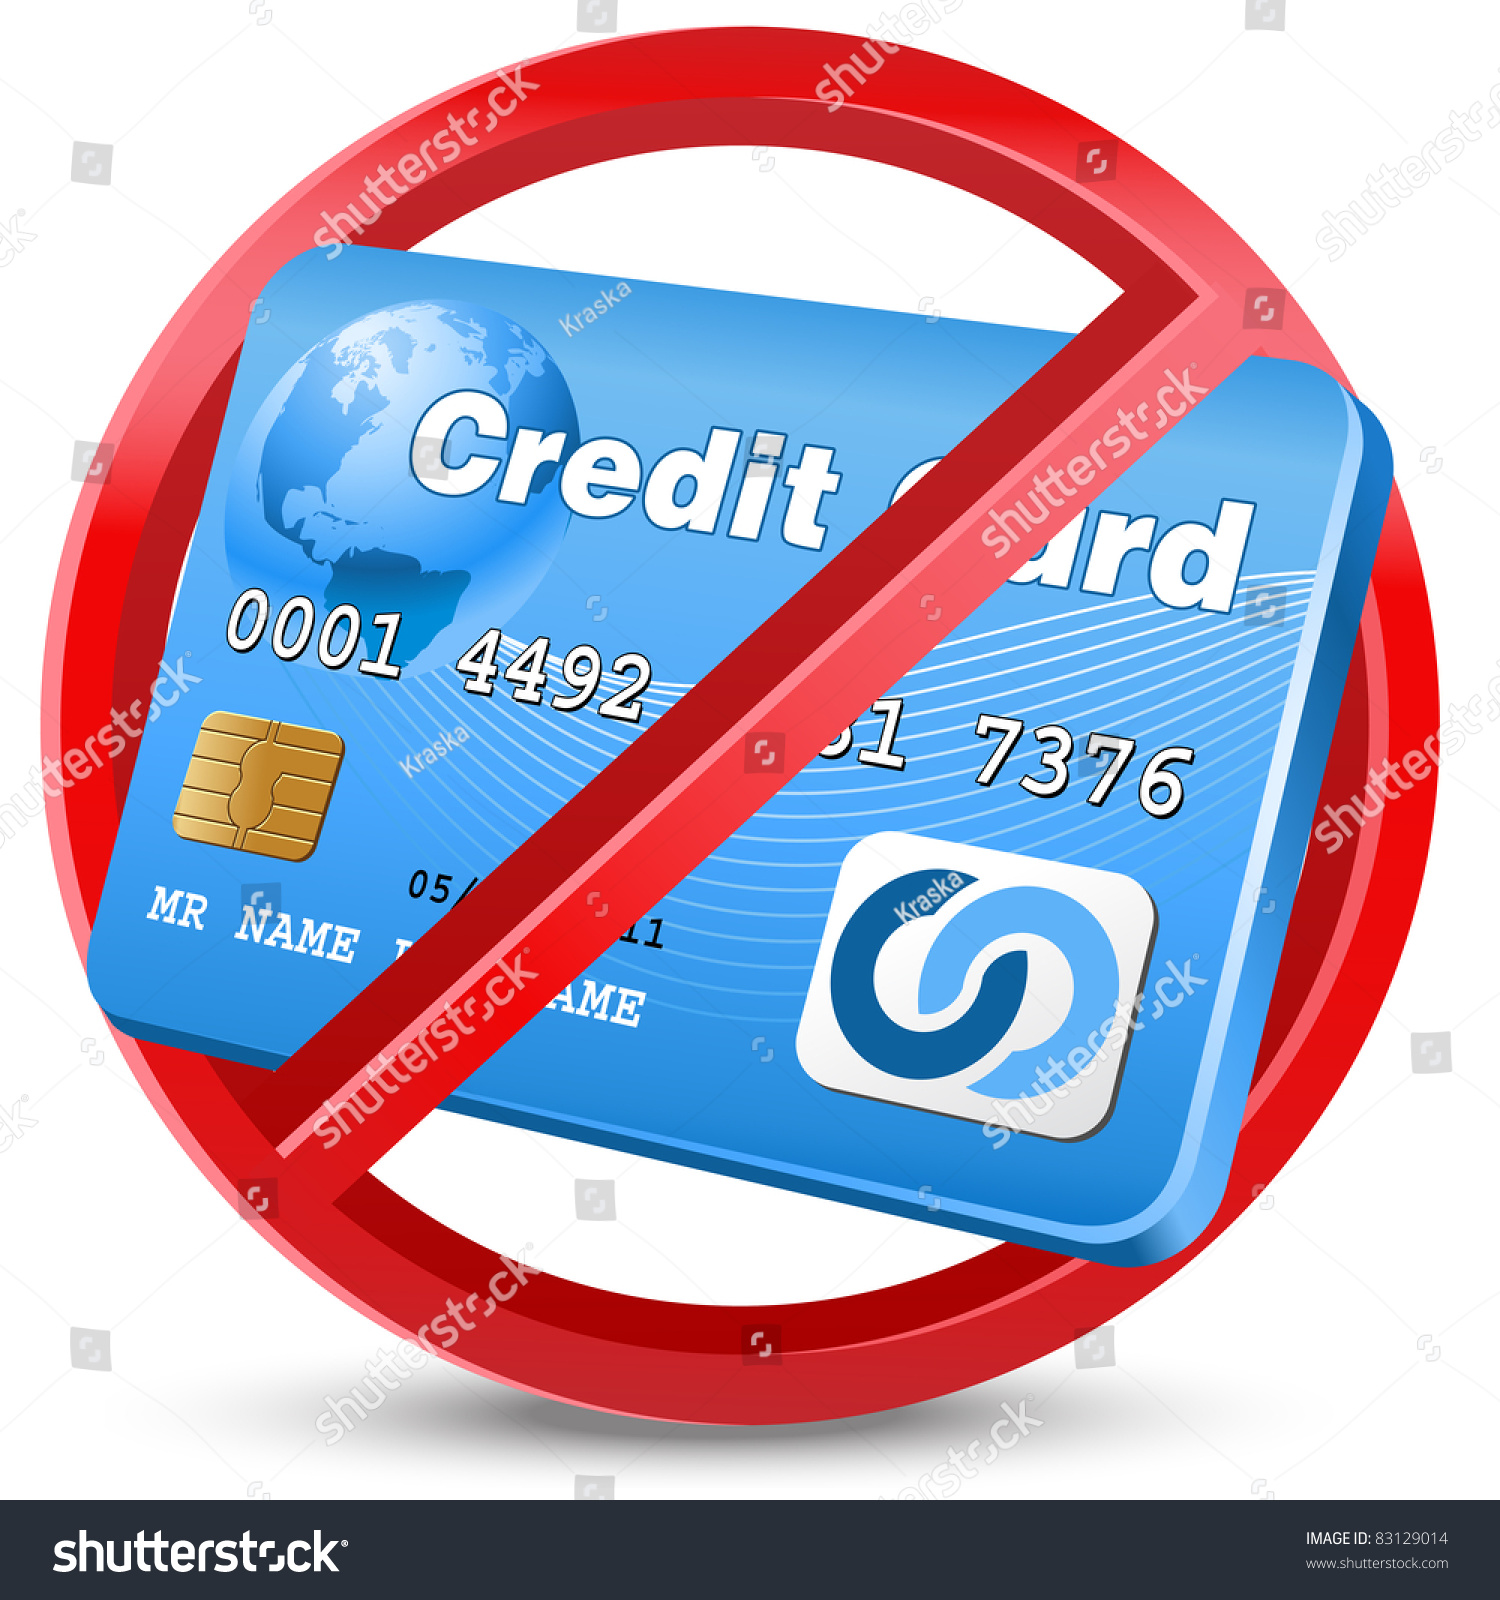 No Credit Card Allowed Sign Stock Vector 83129014